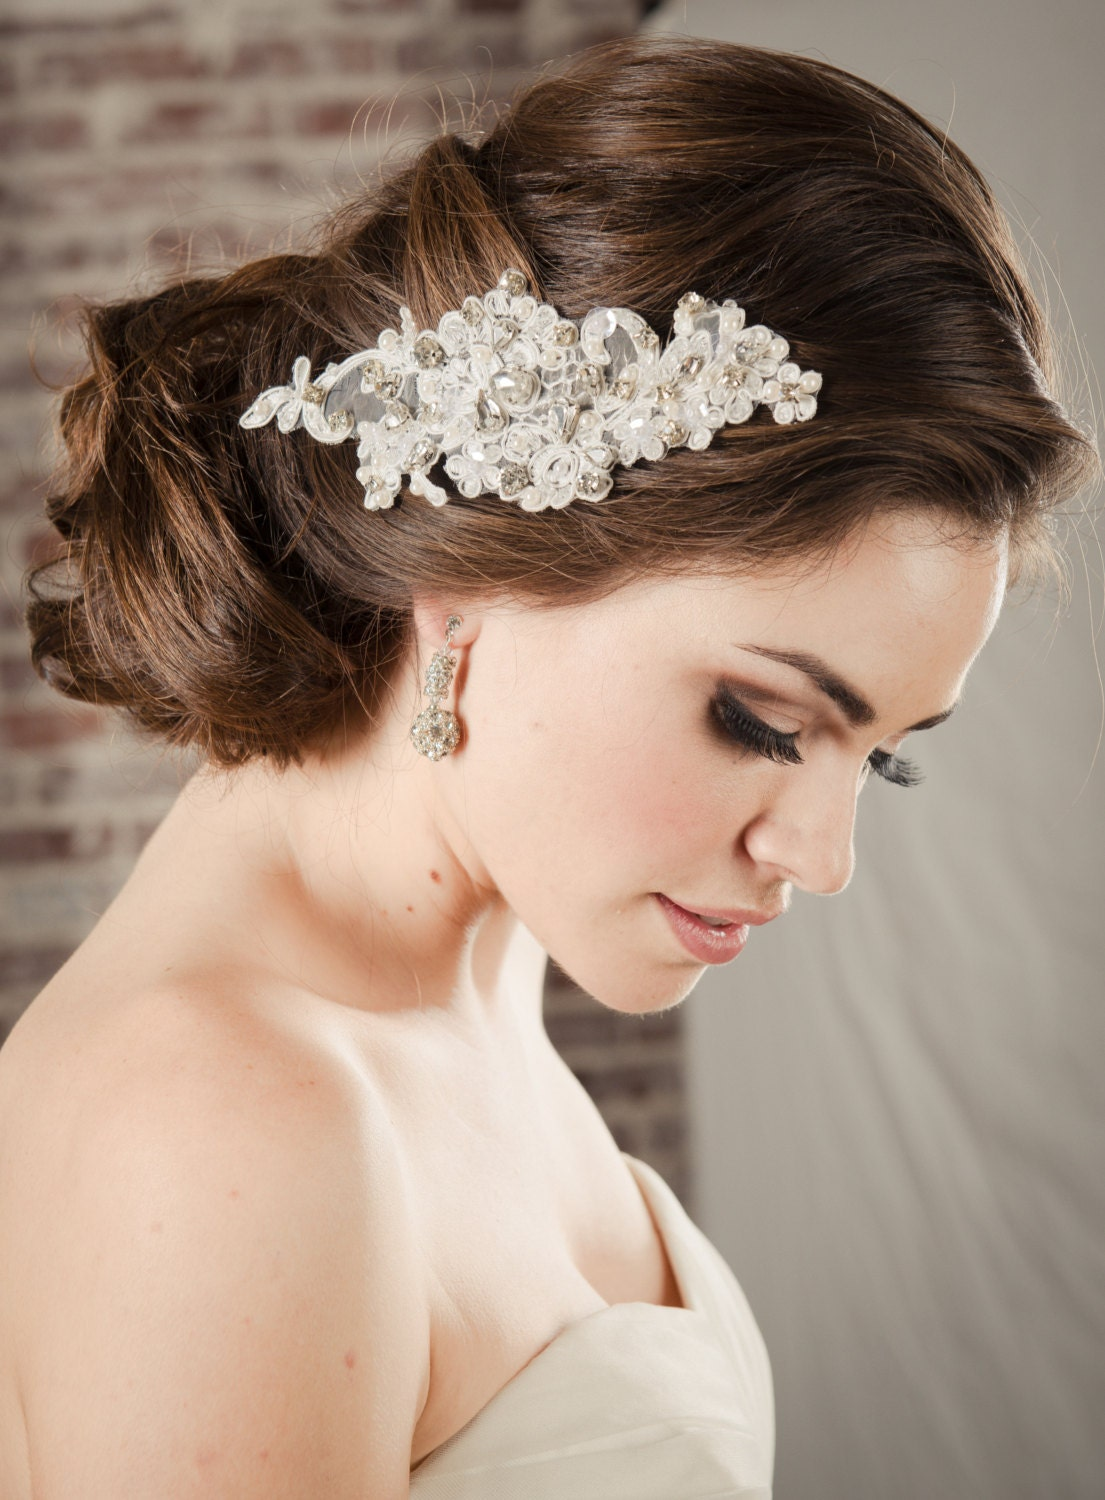 hair accessories bridal lace comb pearl & rhinestone